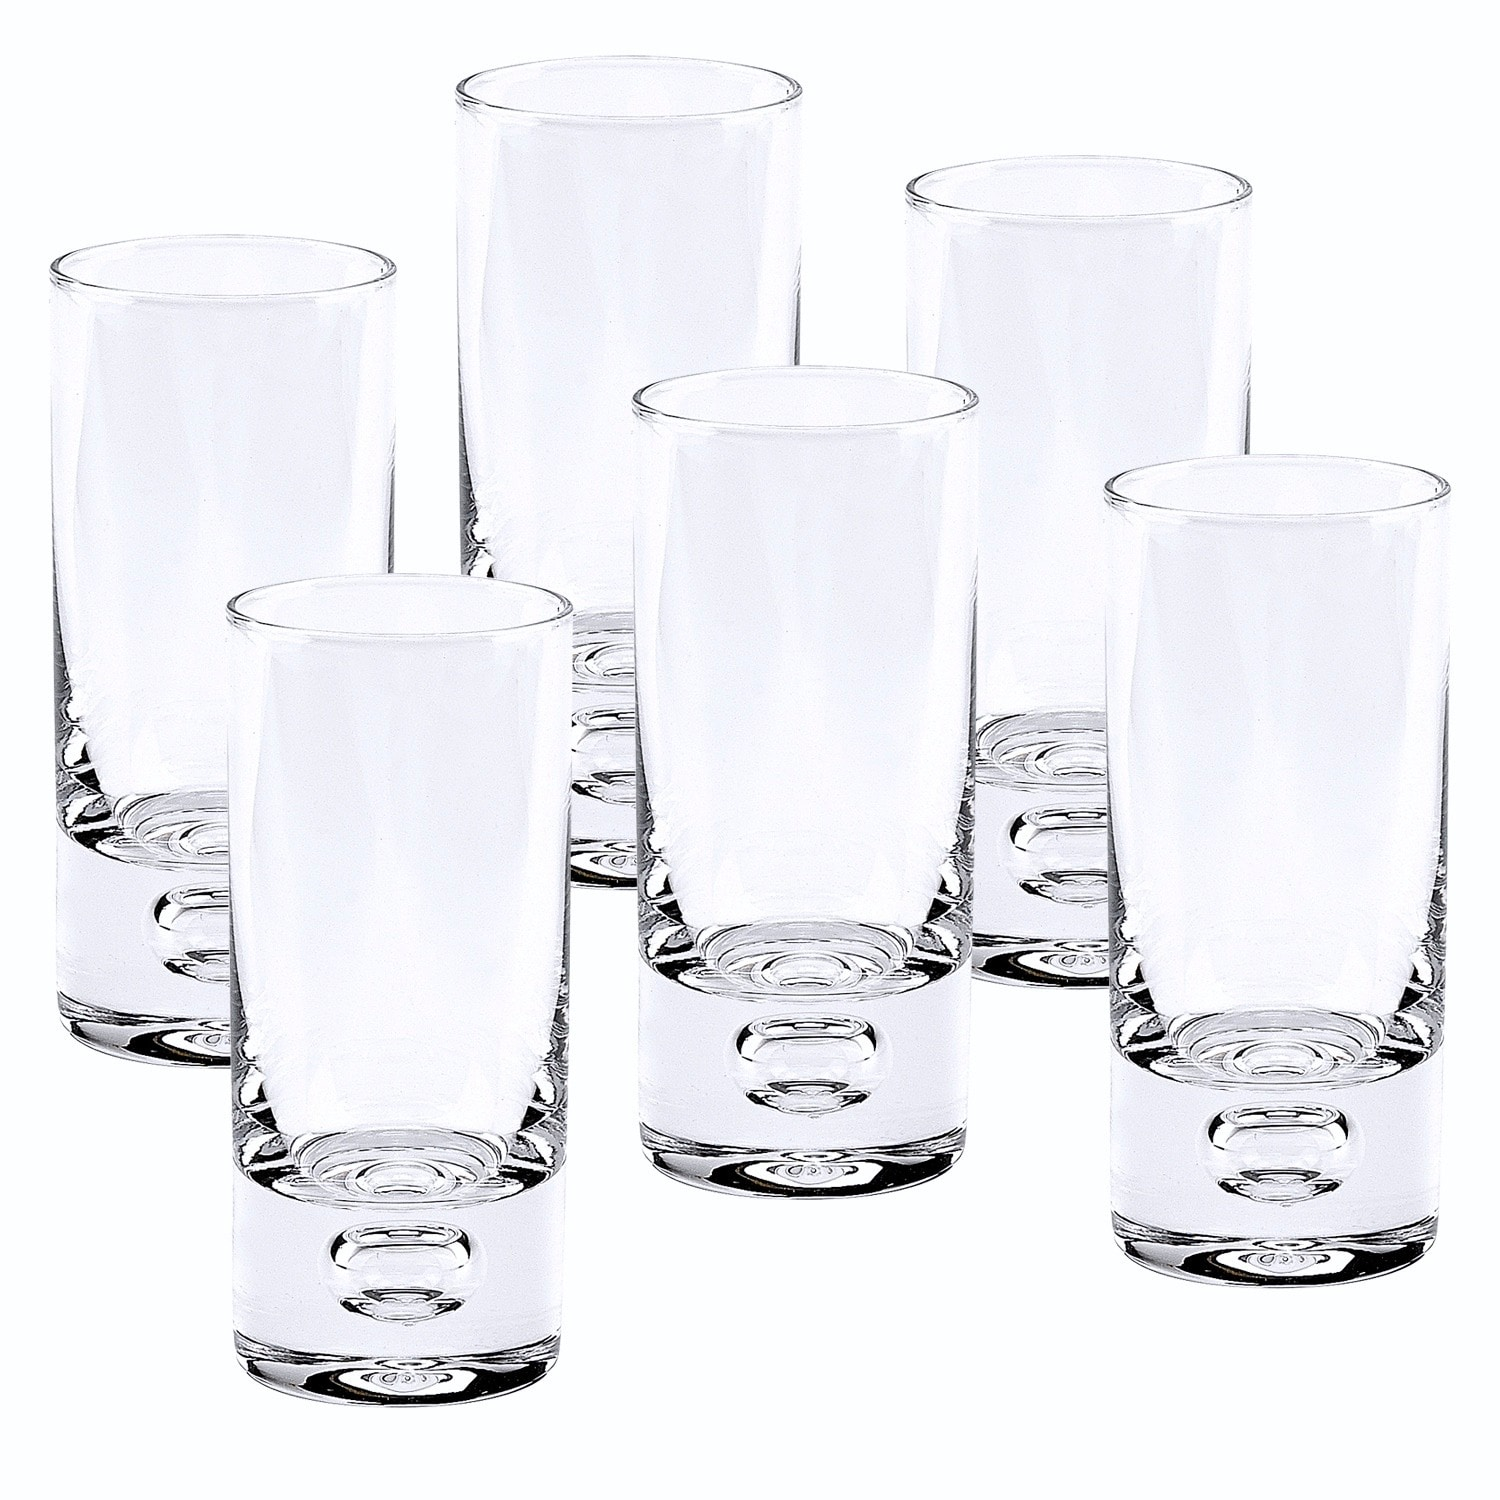 Galaxy Mouth Blown Lead Free Crystal 2 5 Oz Shot Glasses Set Of 6 Overstock 8533529